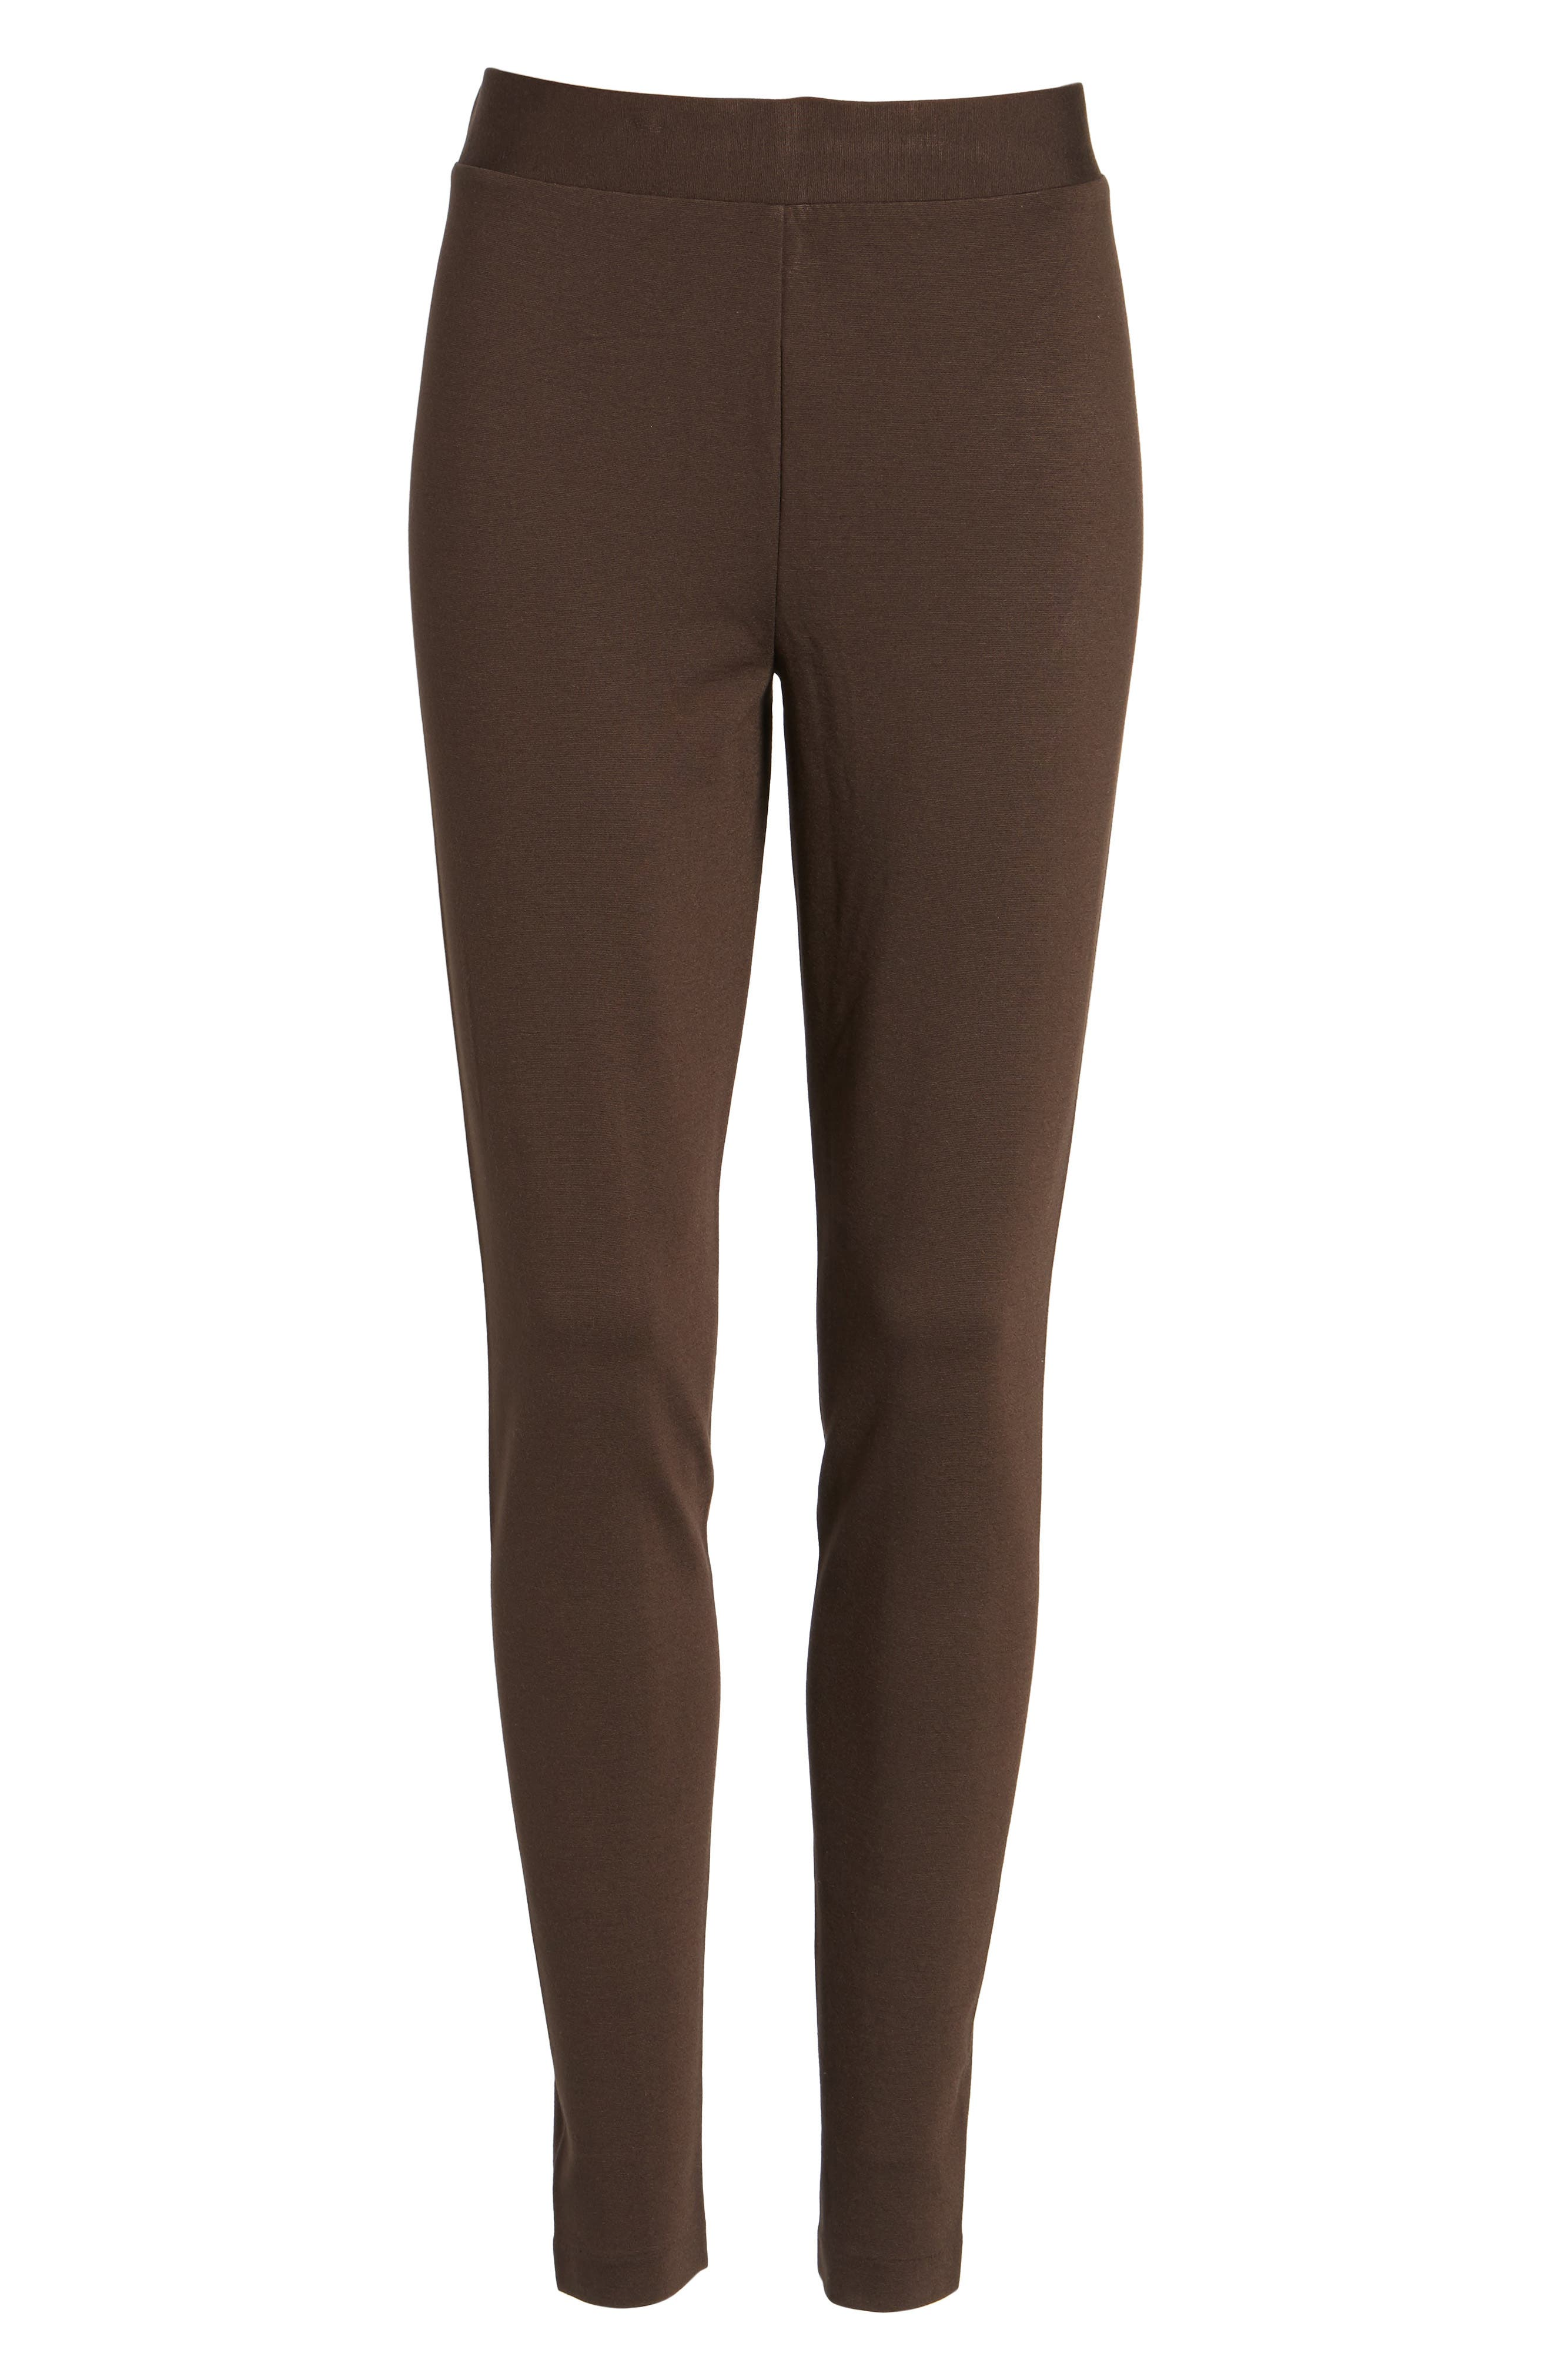 Two by Vince Camuto Seamed Back Leggings,                             Alternate thumbnail 6, color,                             ESPRESSO